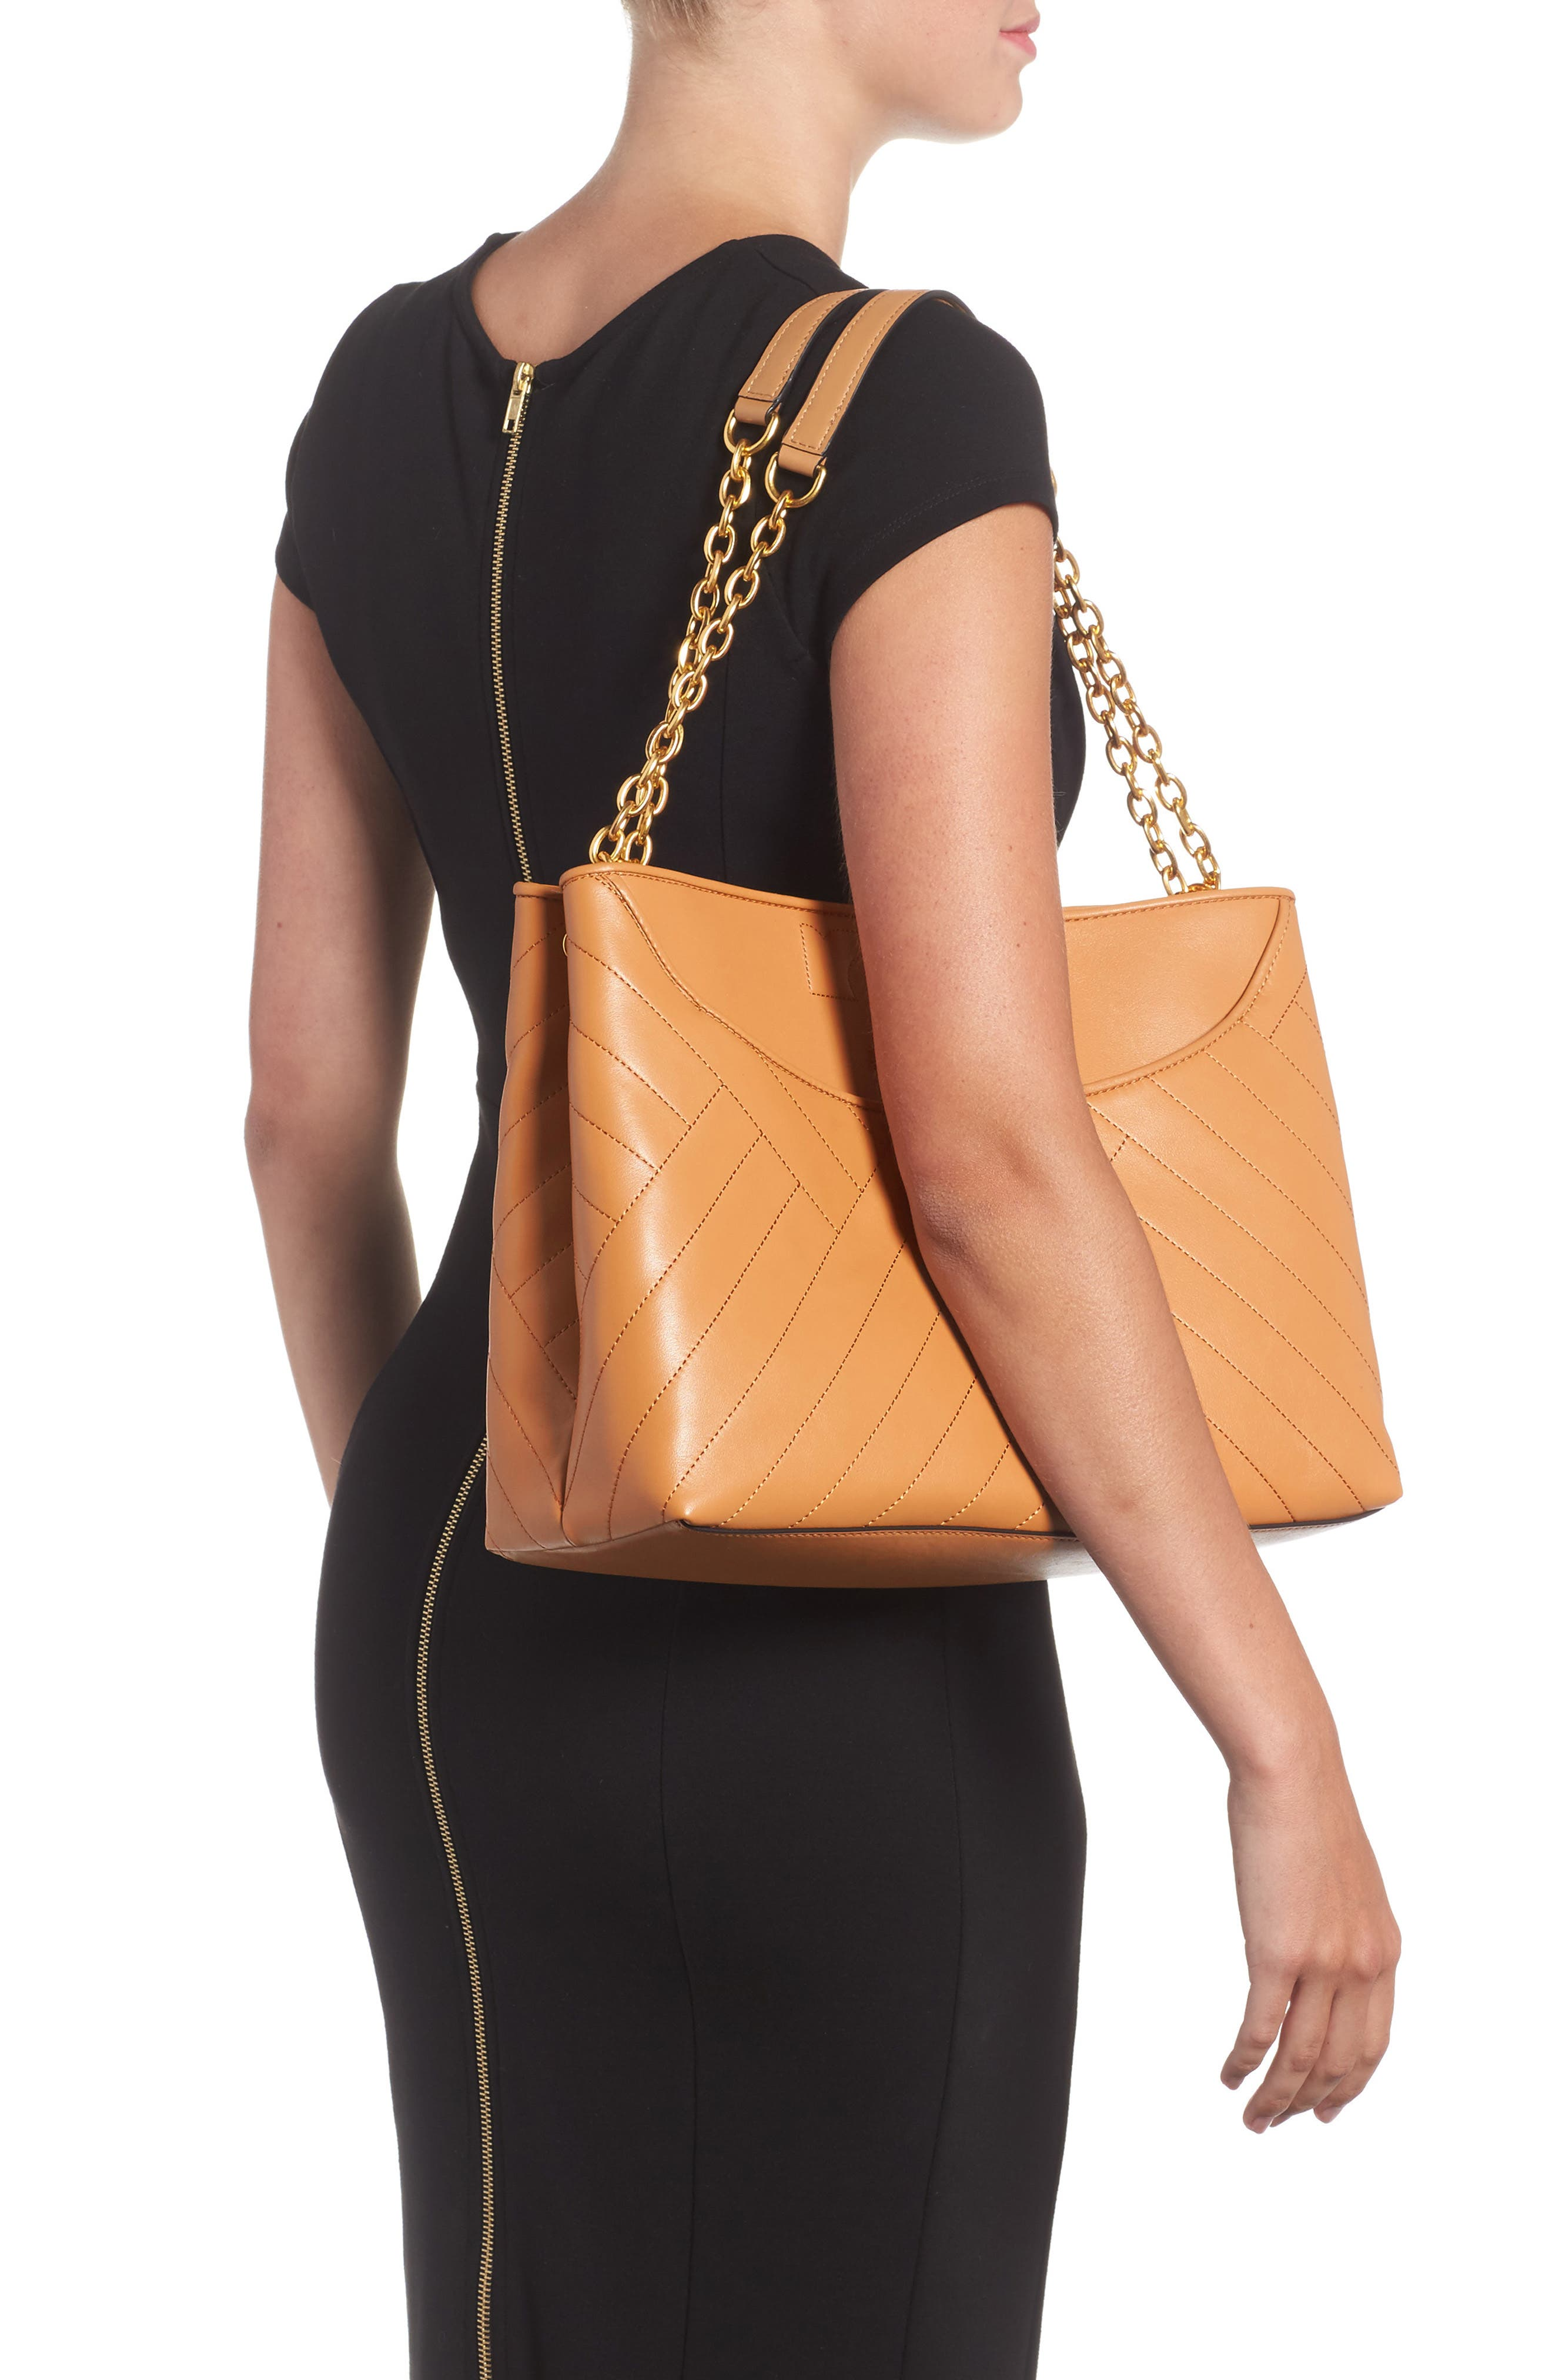 TORY BURCH,                             Alexa Leather Tote,                             Alternate thumbnail 2, color,                             200